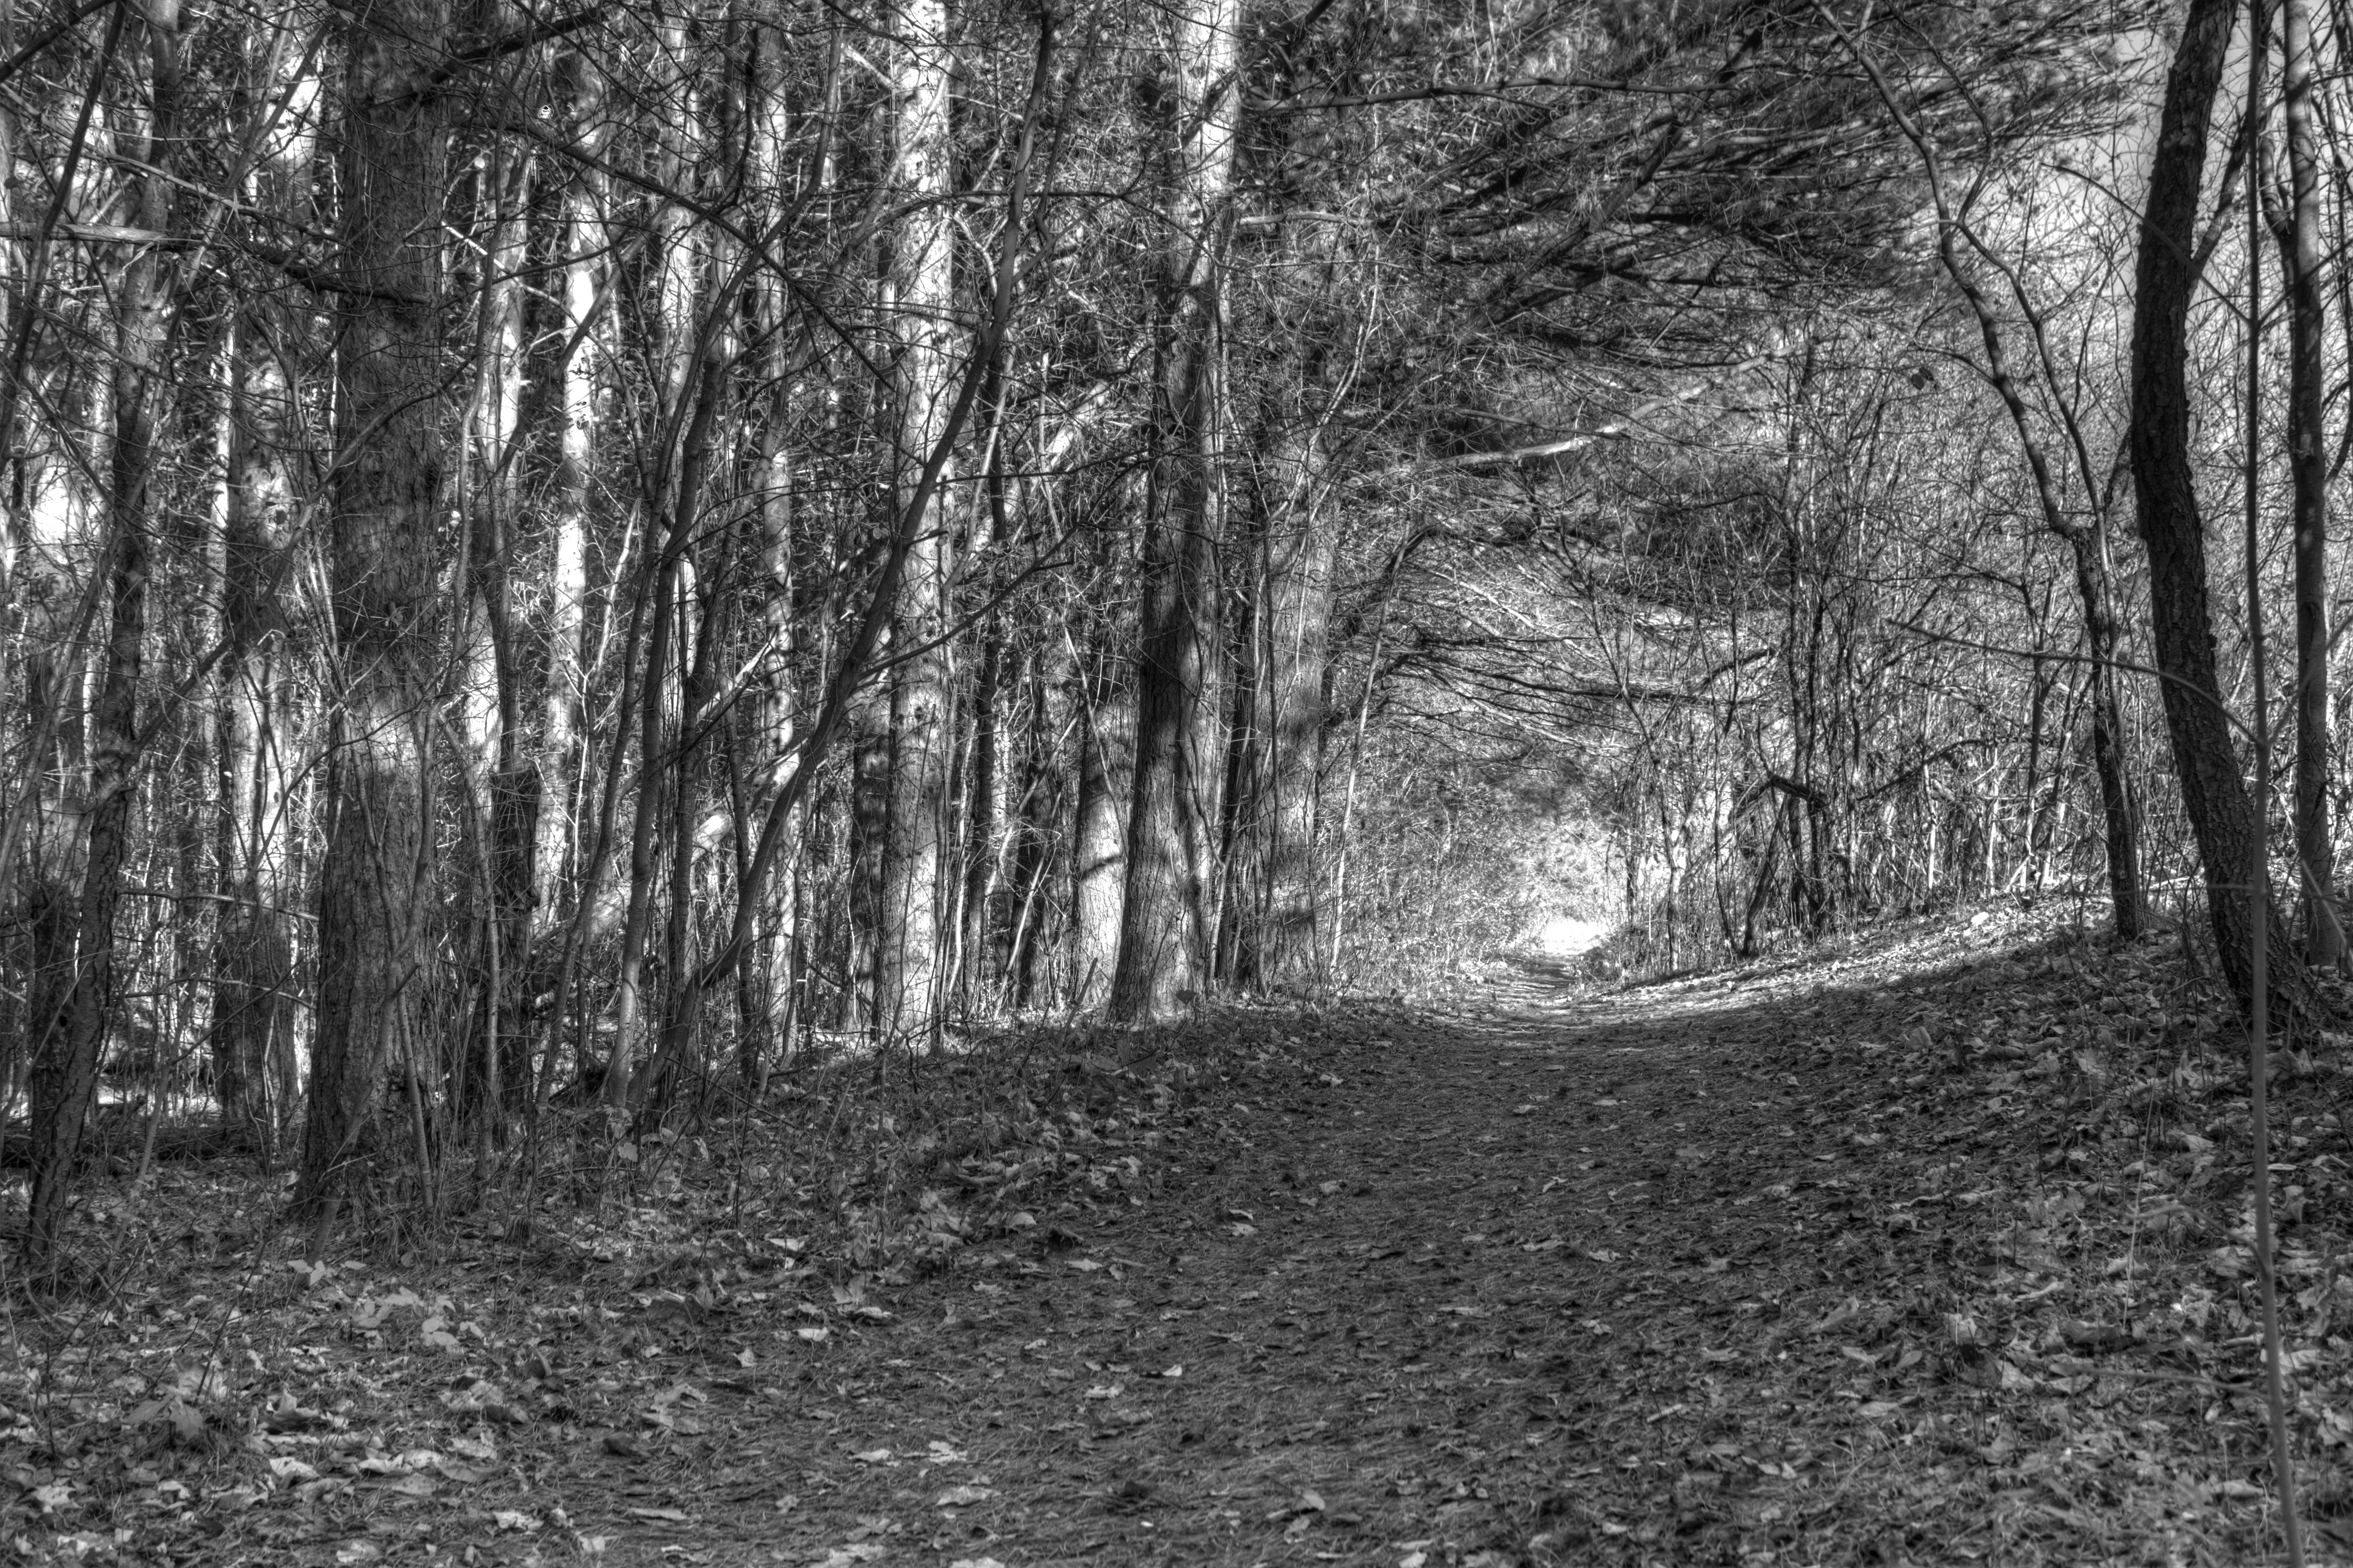 Forest Path by Shouldofducked